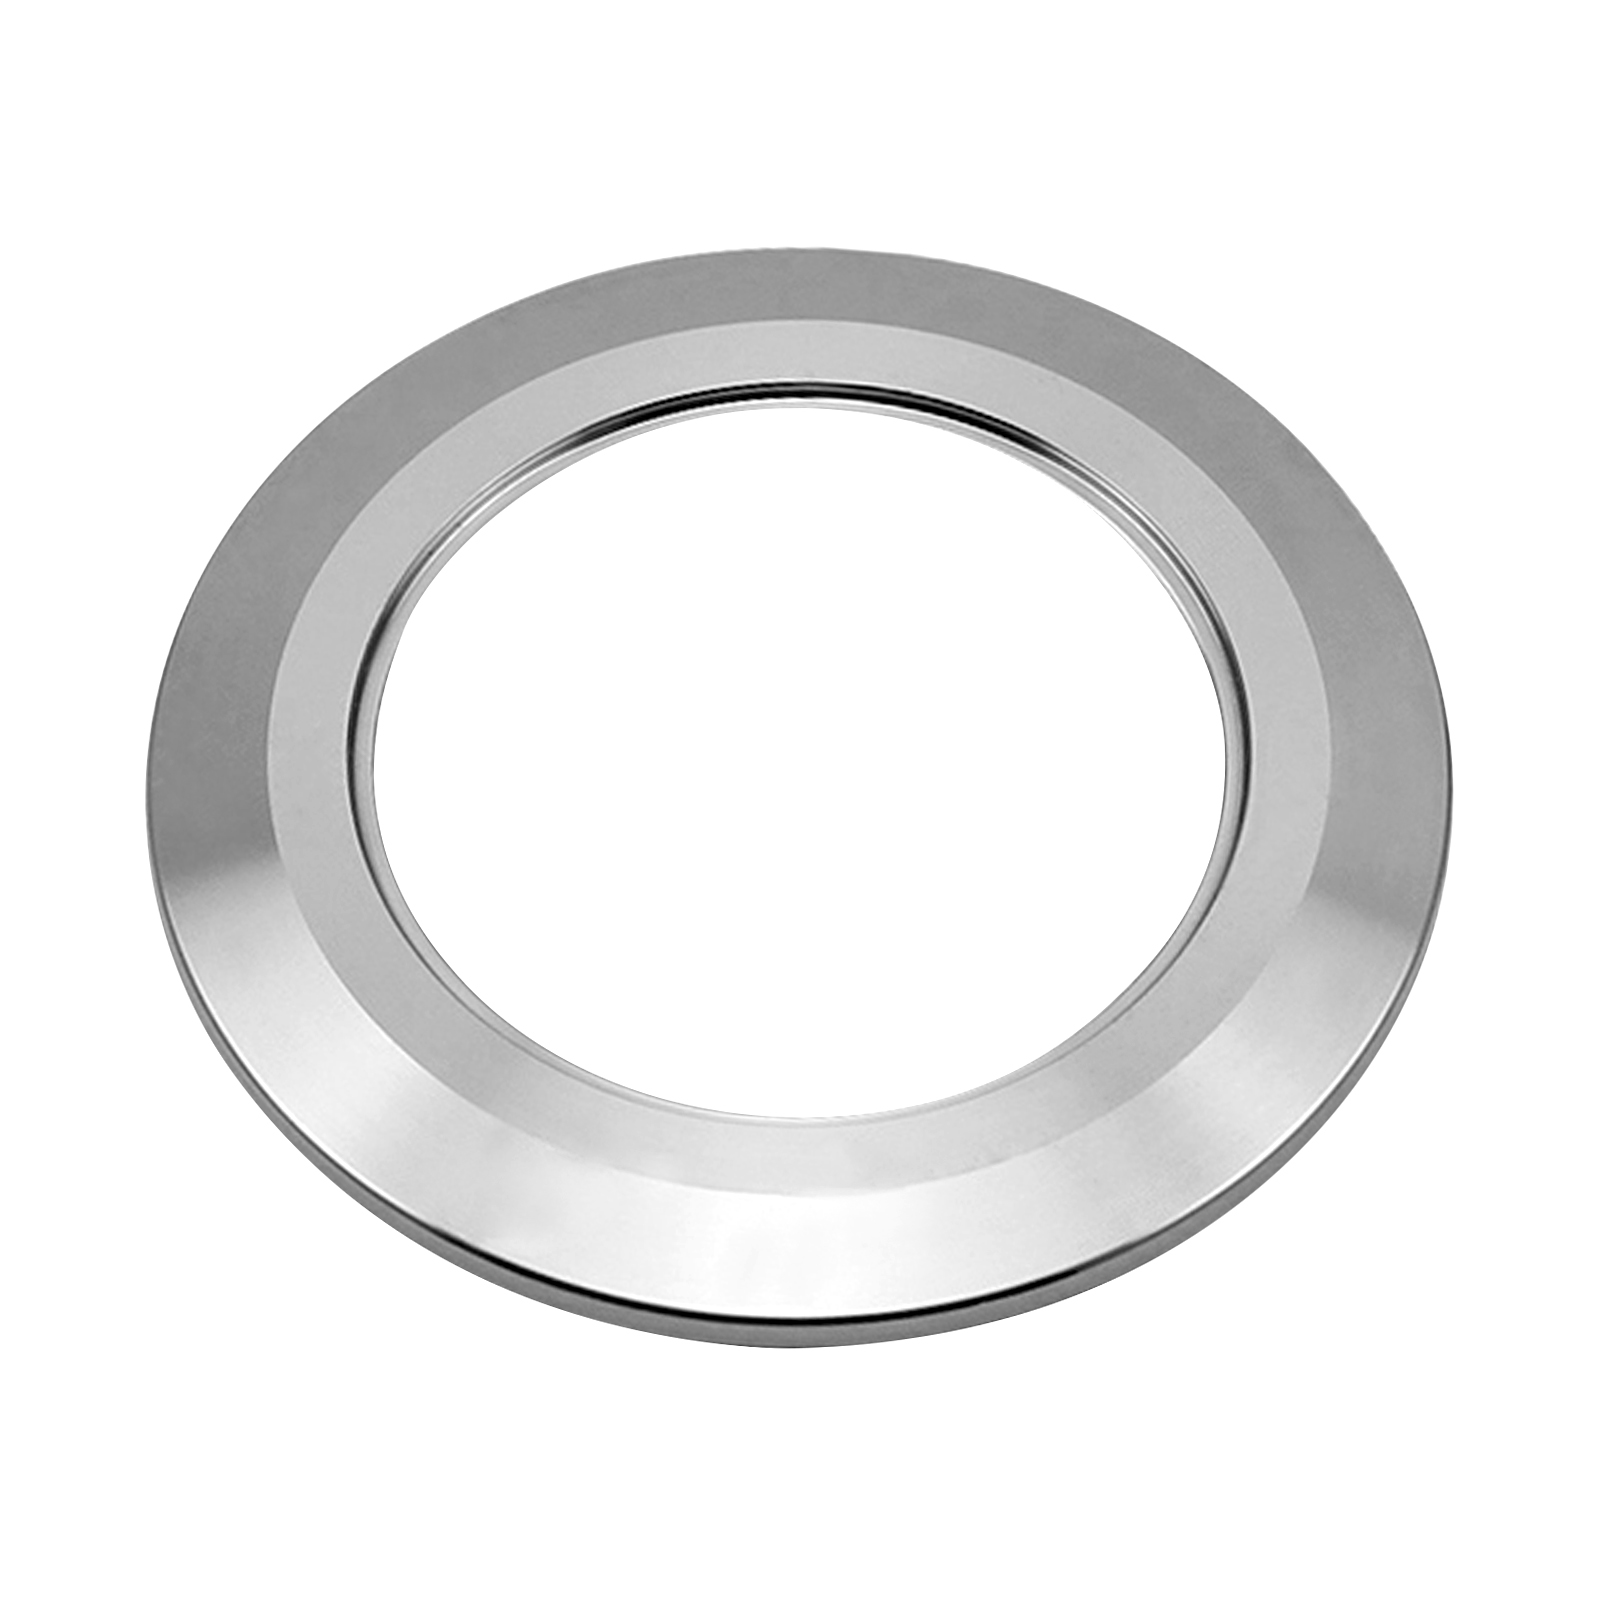 ISO-KF80 Stainless Steel Blank Vacuum Flanges with Bore, 3″